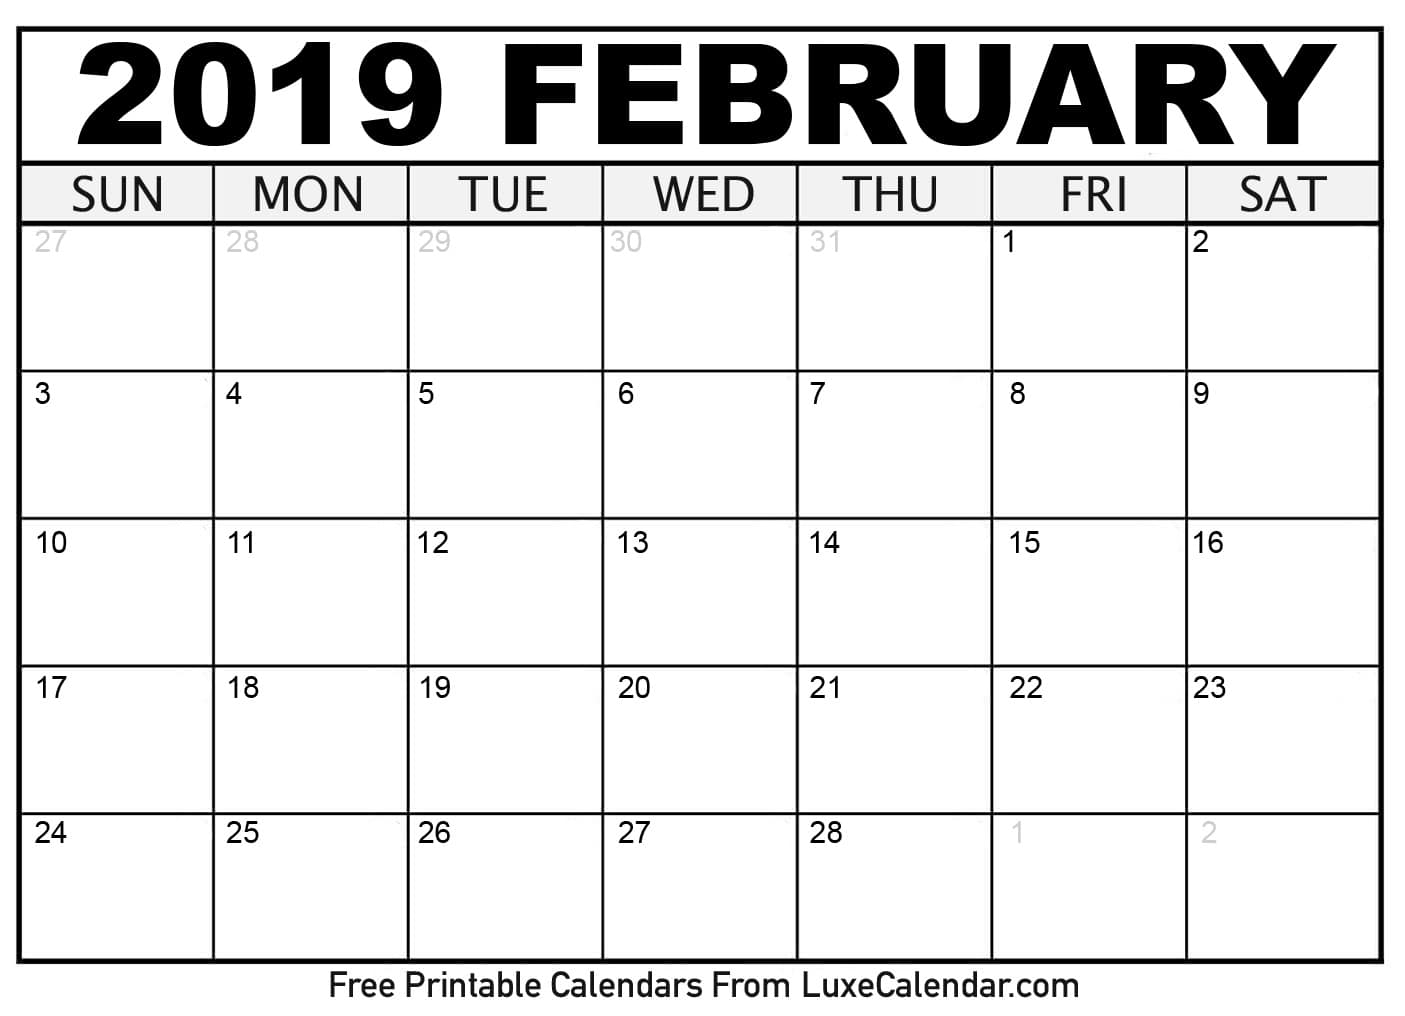 February Calendar For 2019 7 Recommended Tools to Build 2019 February Calendar | Posts by